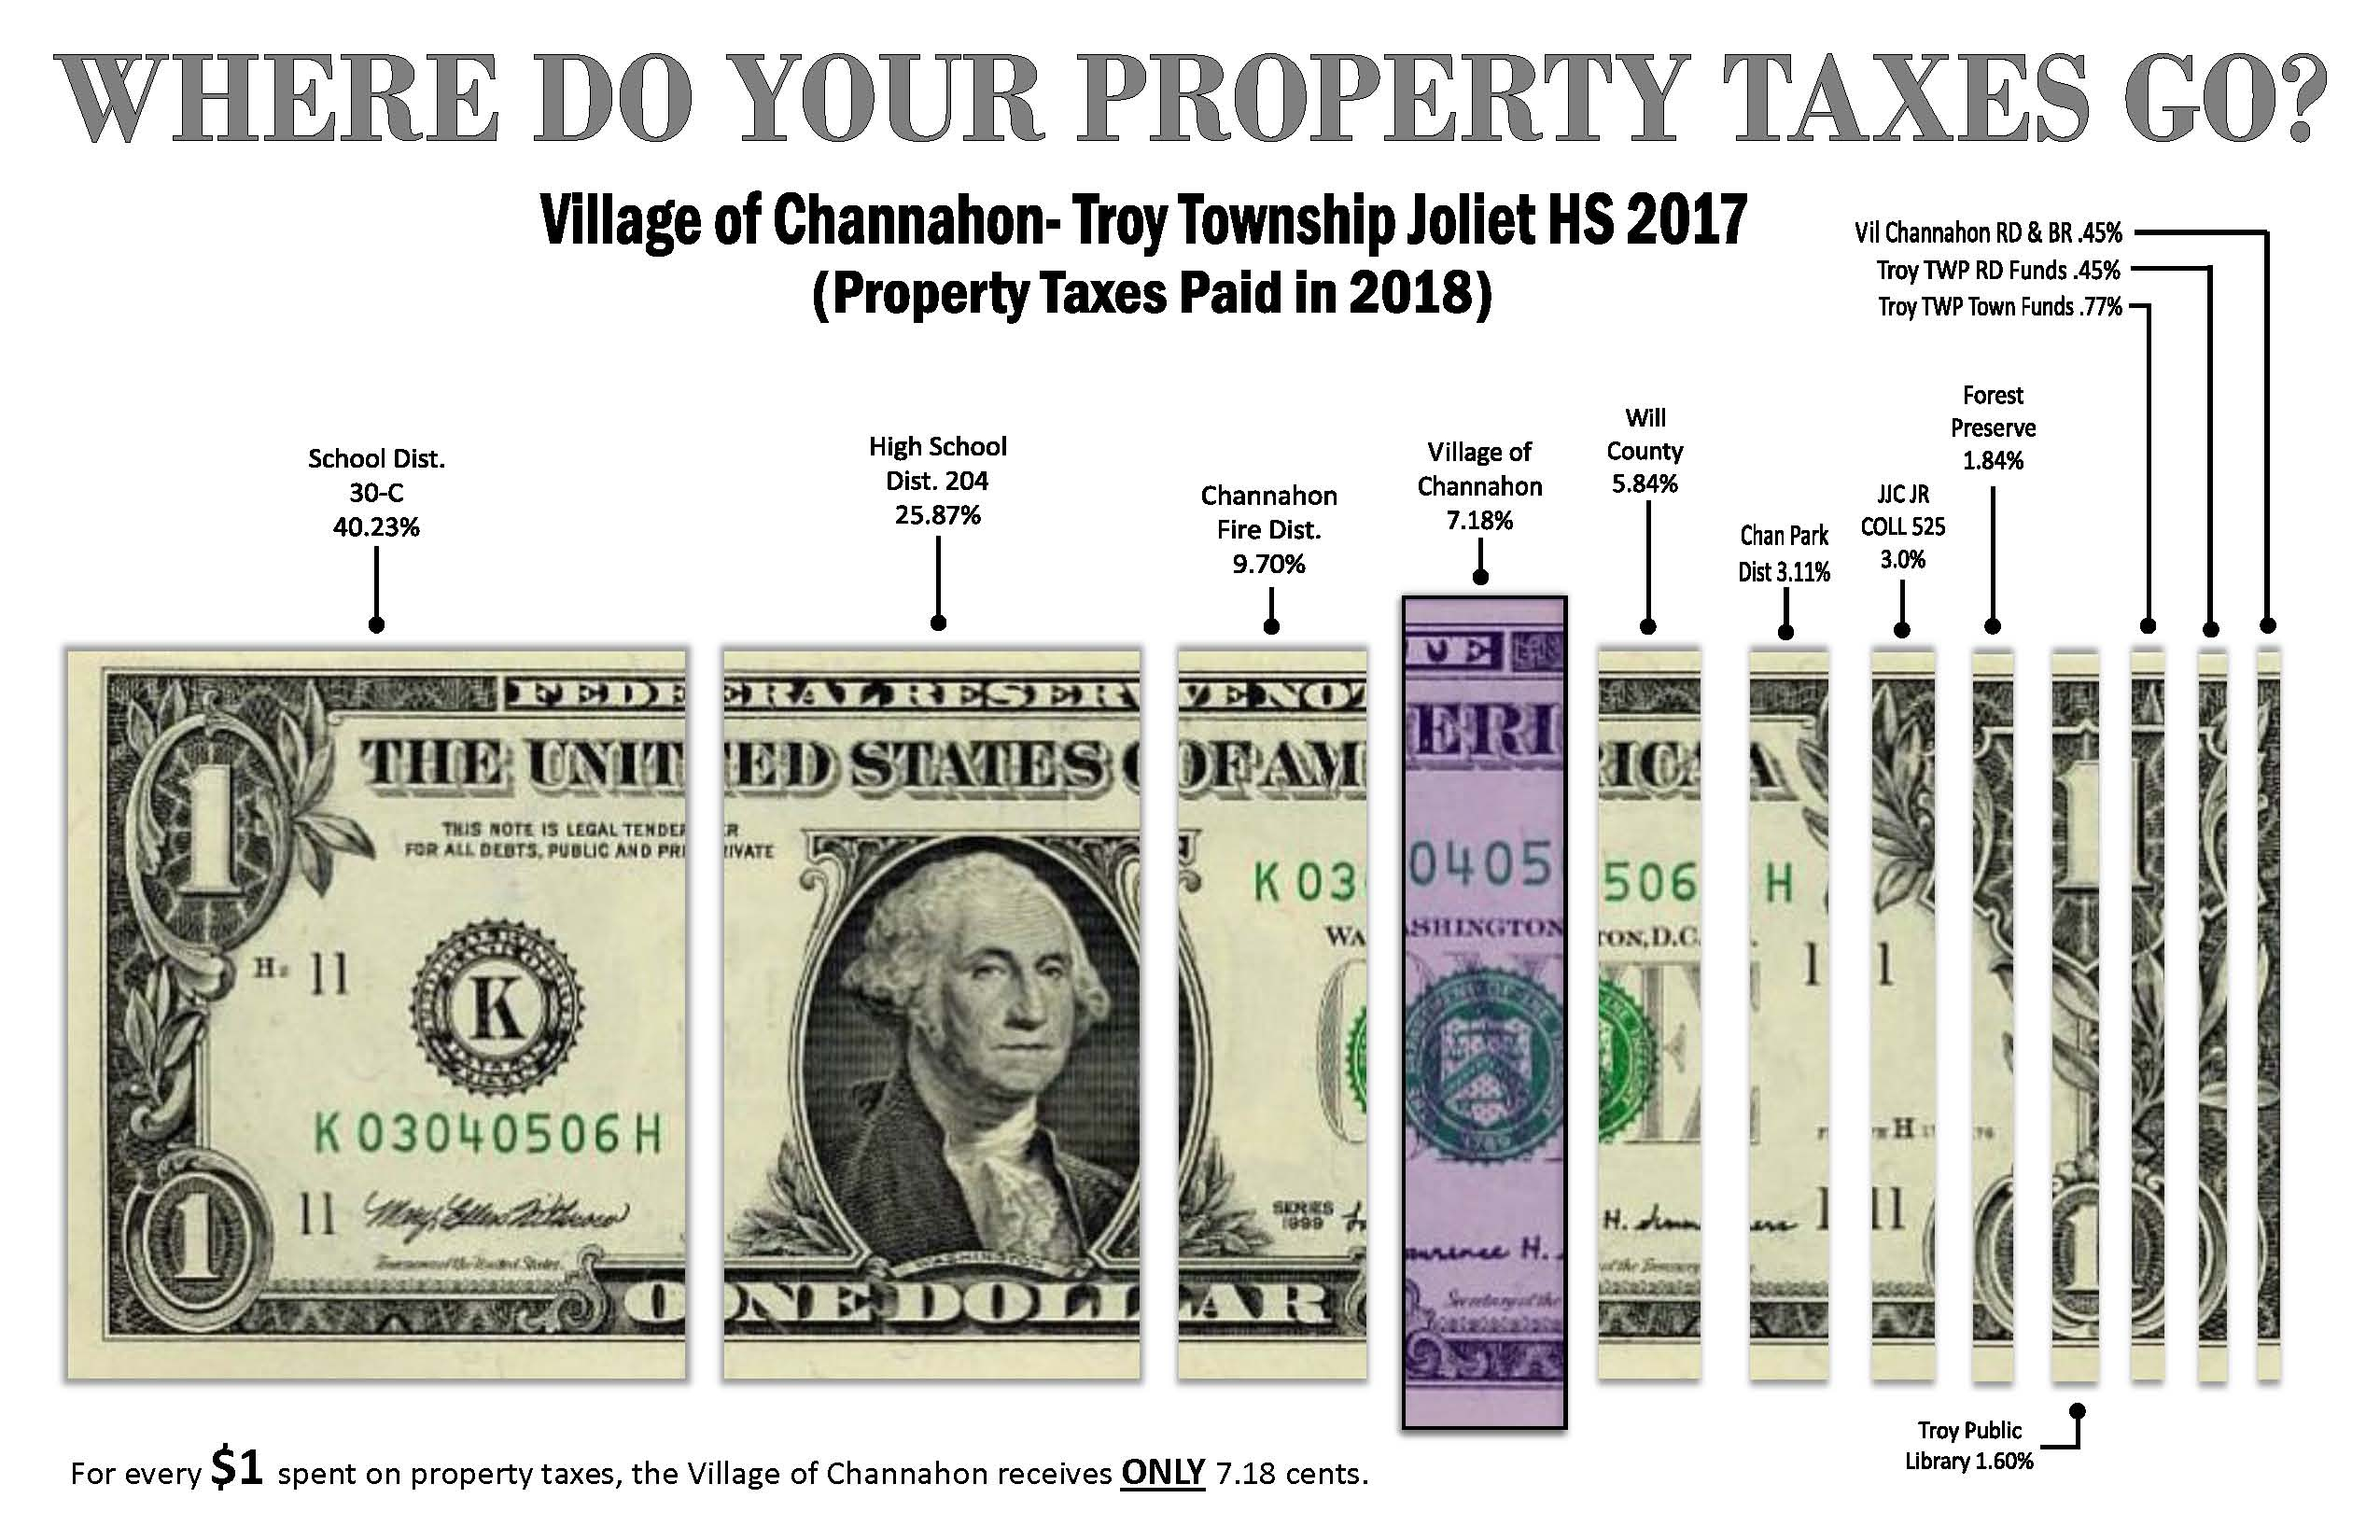 Troy Township Joliet High School - Property Taxes Paid in 2018 (PDF)